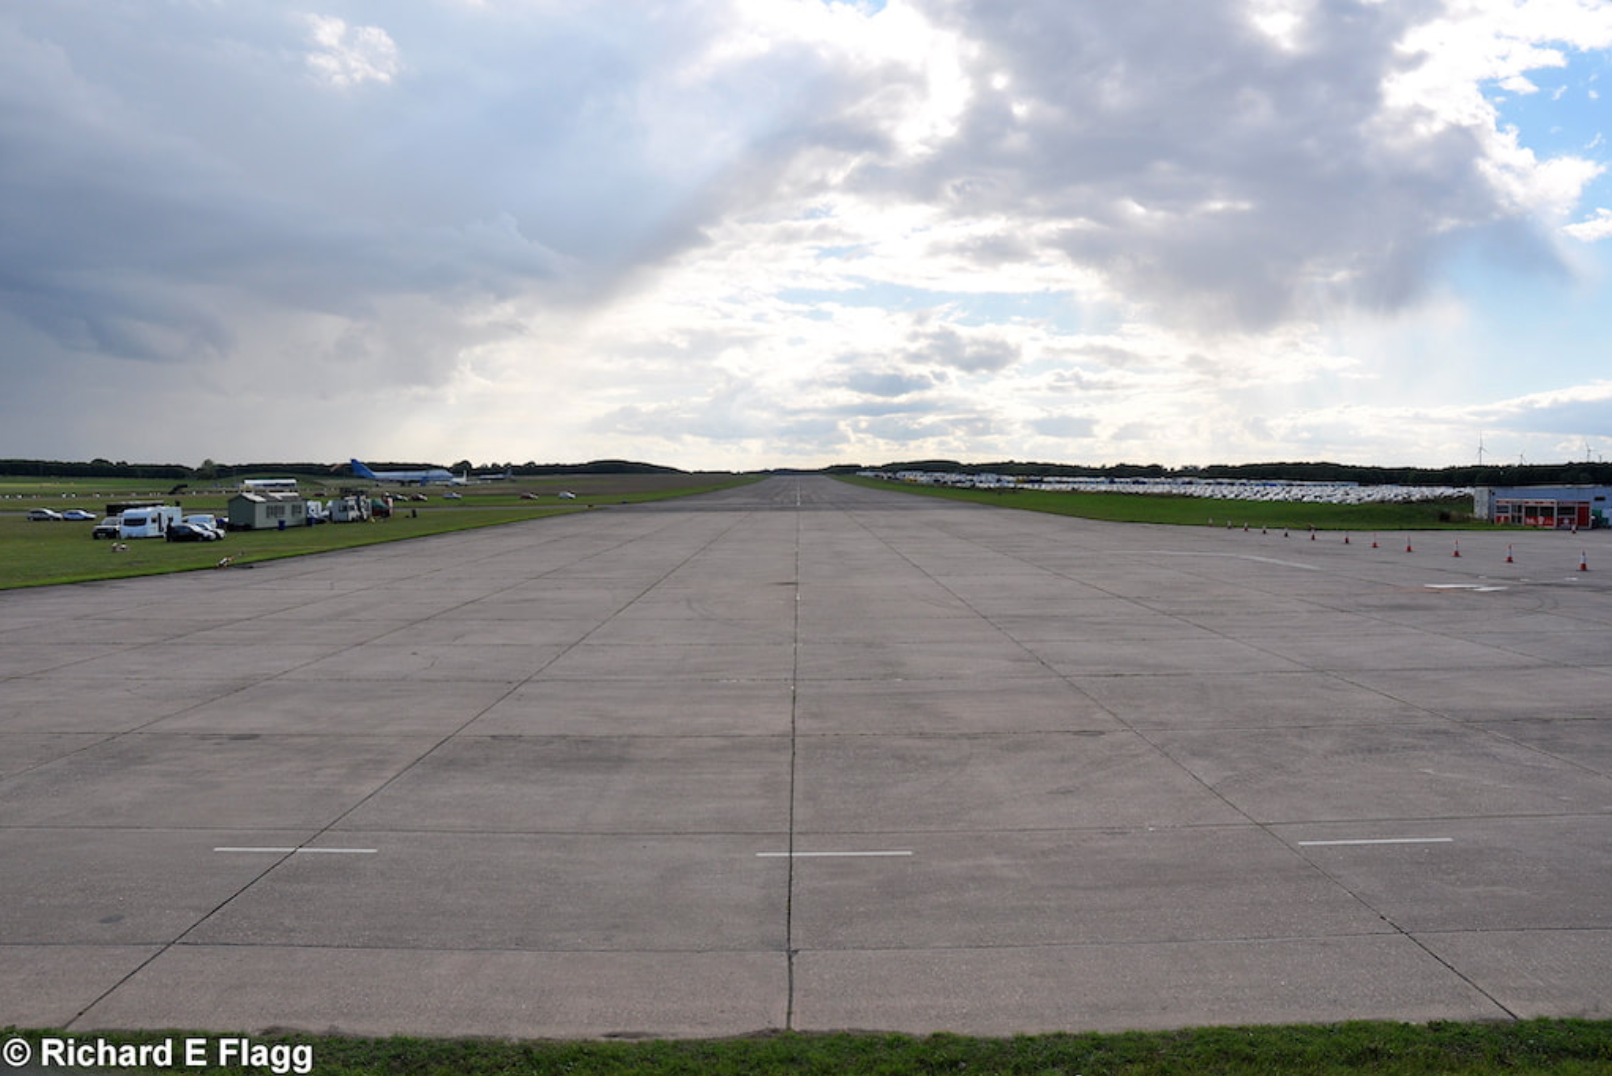 001Runway 06:24. Looking south west from the runway 24 threshold - 28 August 2011.png